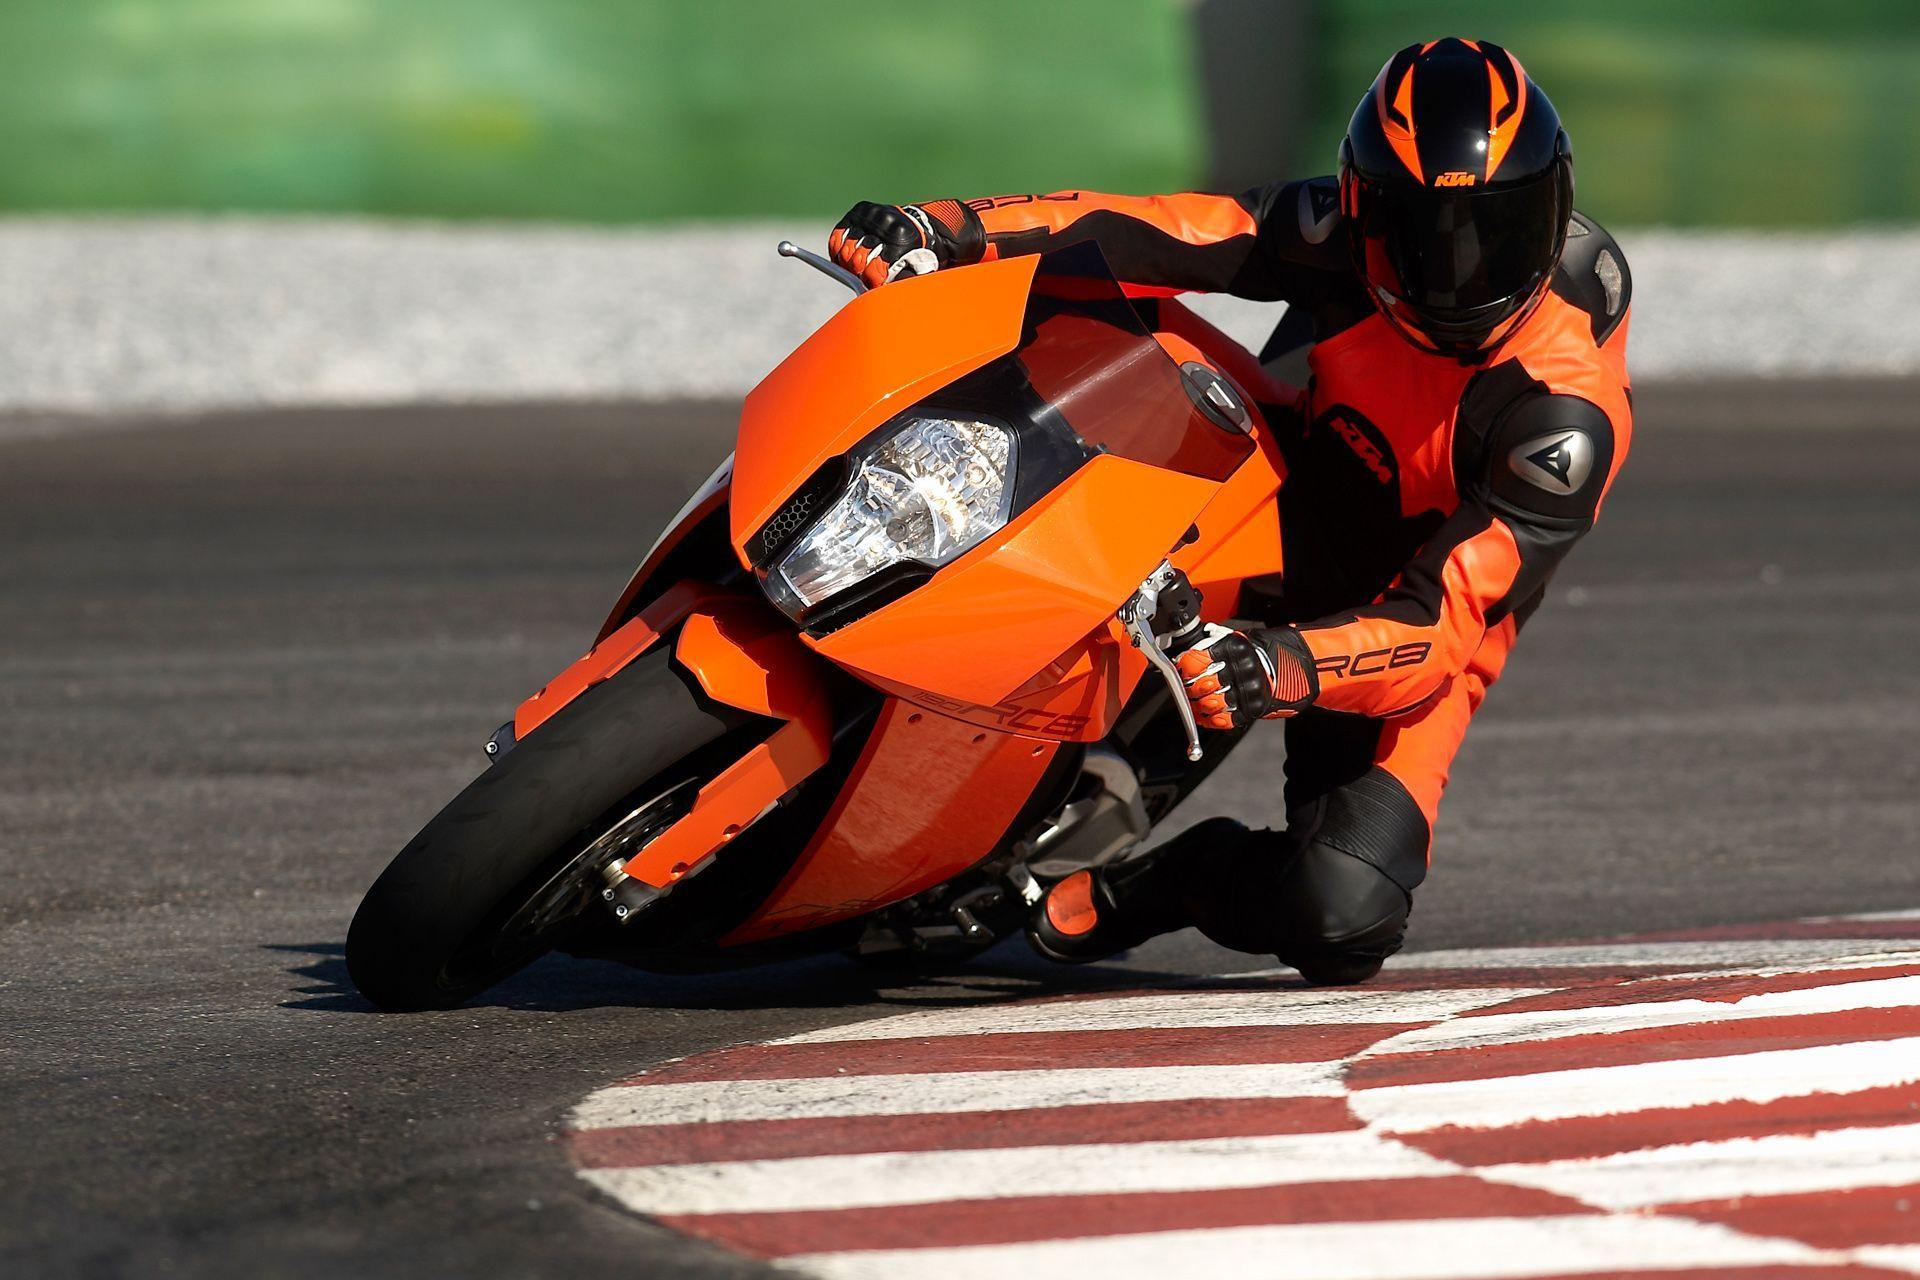 Download the KTM 1190 RC8 Air Turn In Wallpaper, KTM 1190 RC8 Air